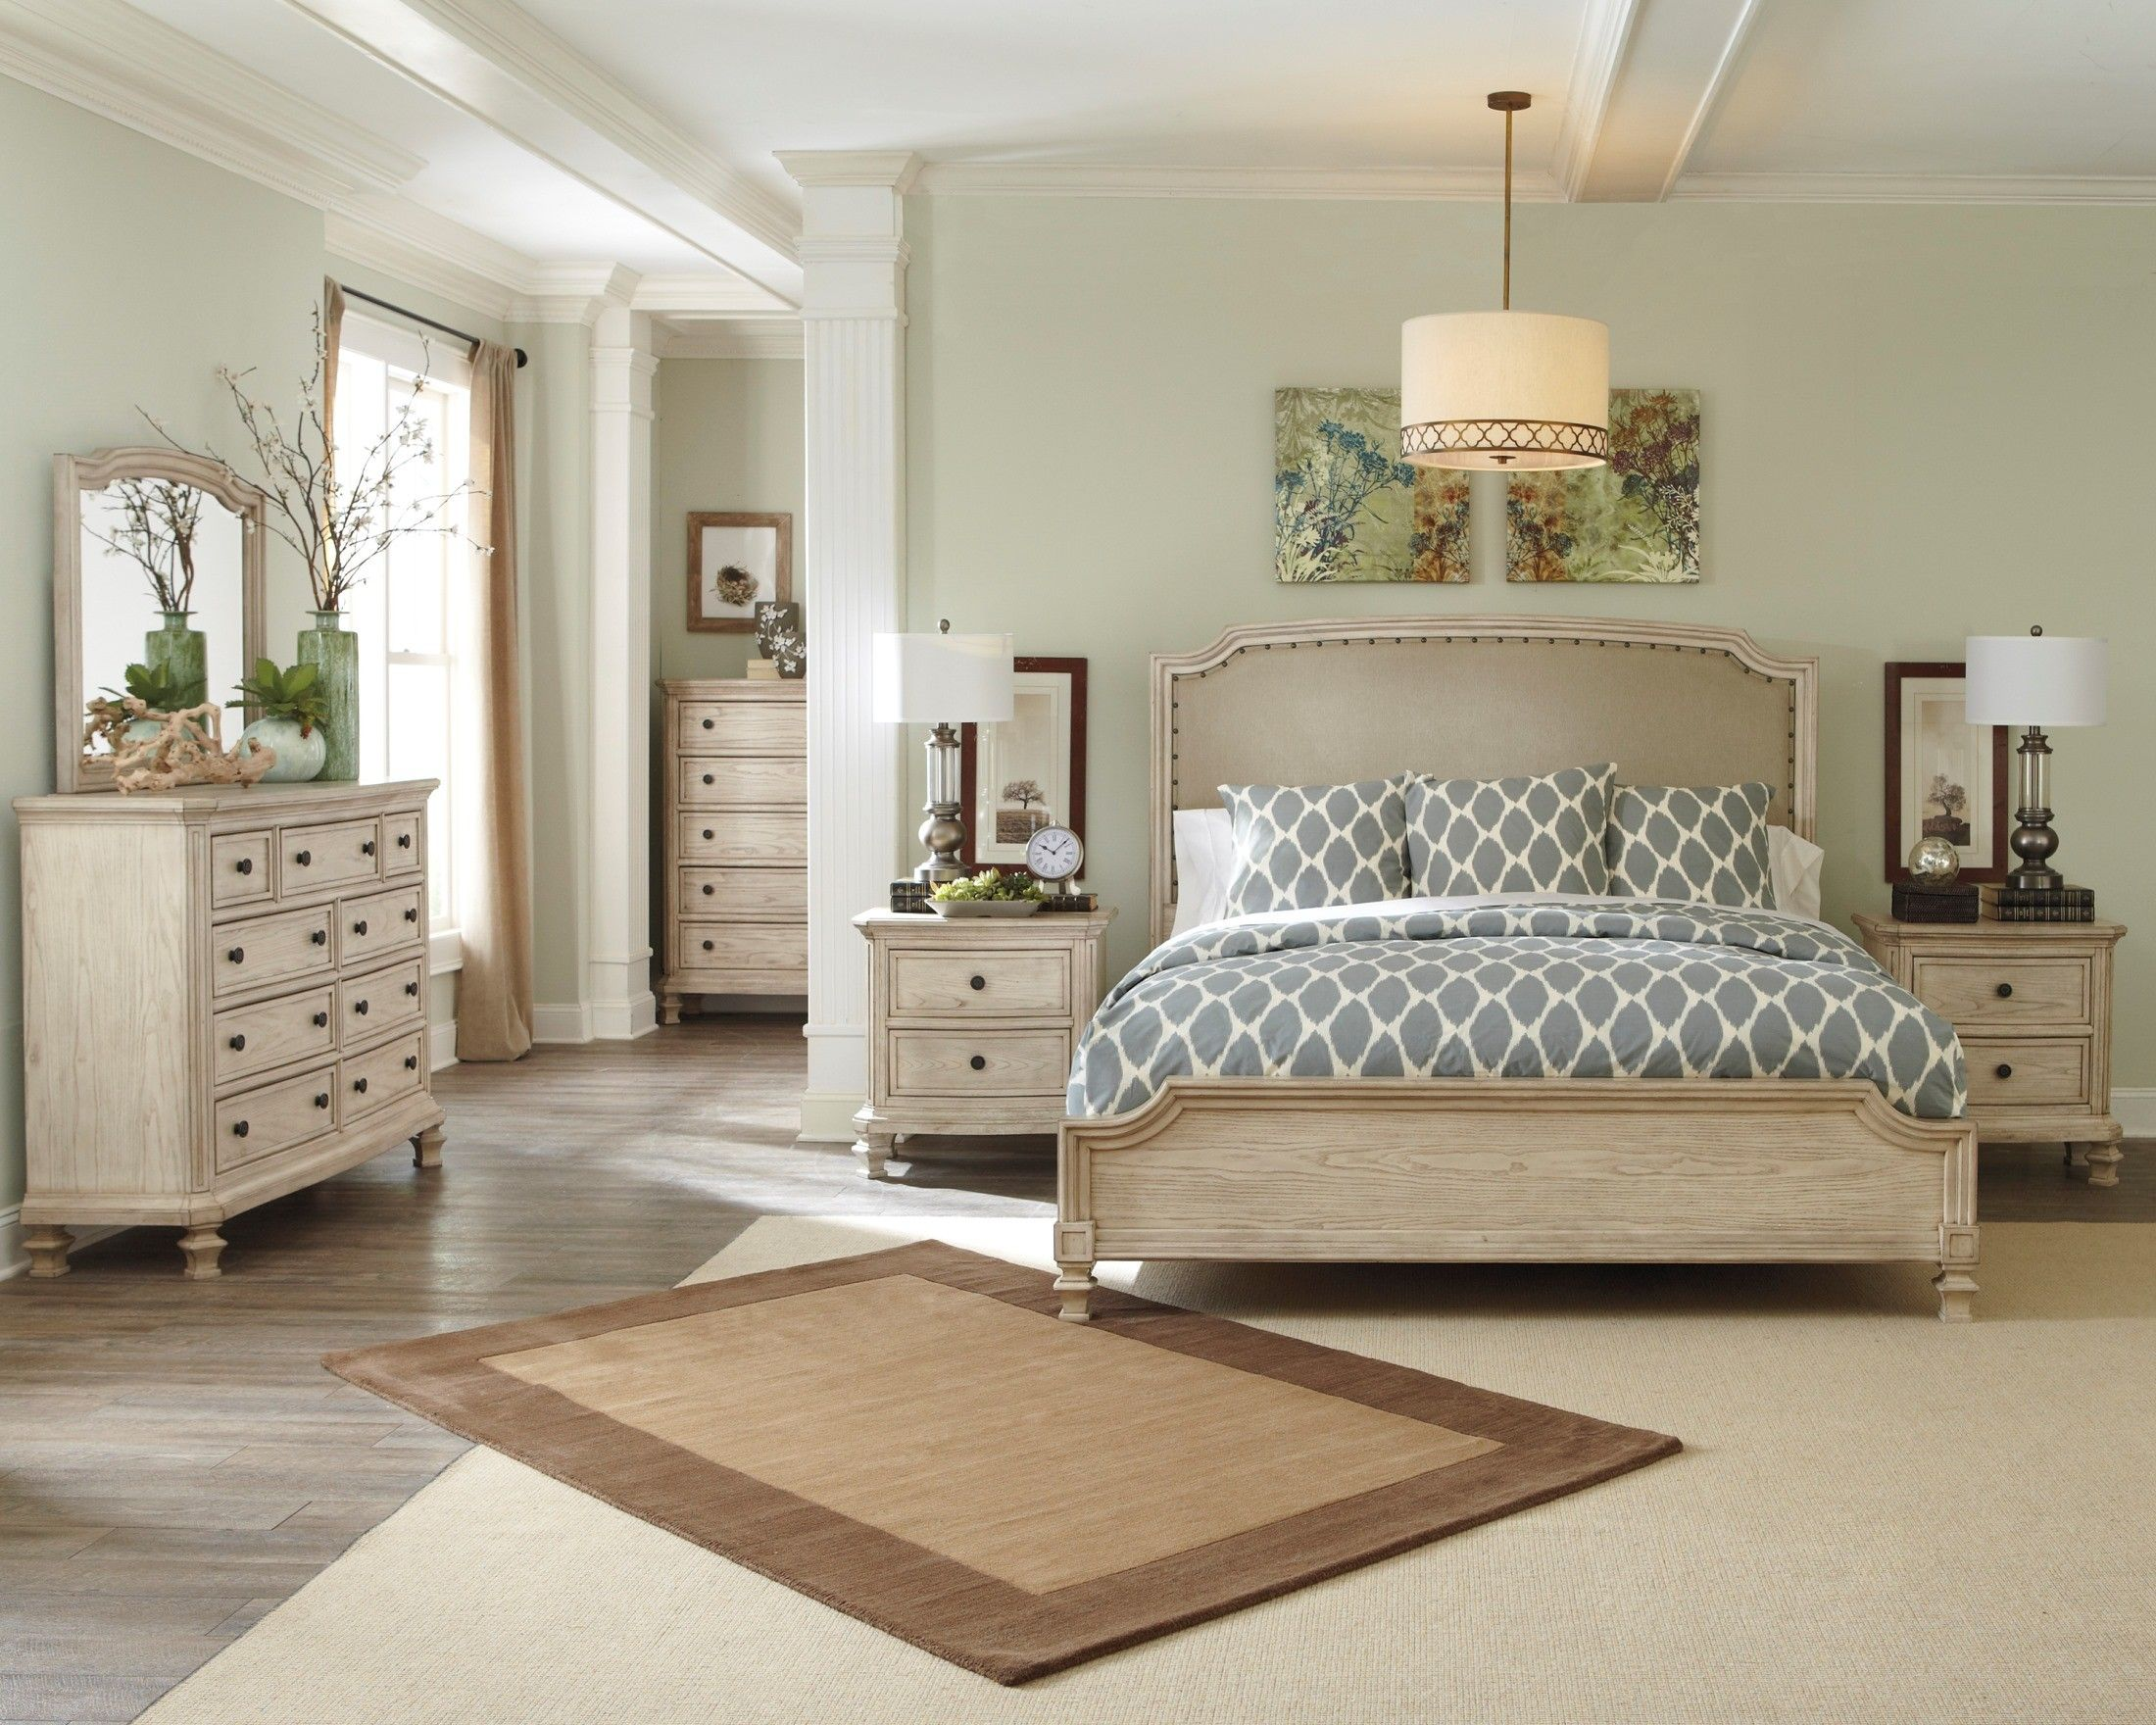 Ashley white bedroom furniture - Demarlos Upholstered Panel Bedroom Set Ashley Furniture